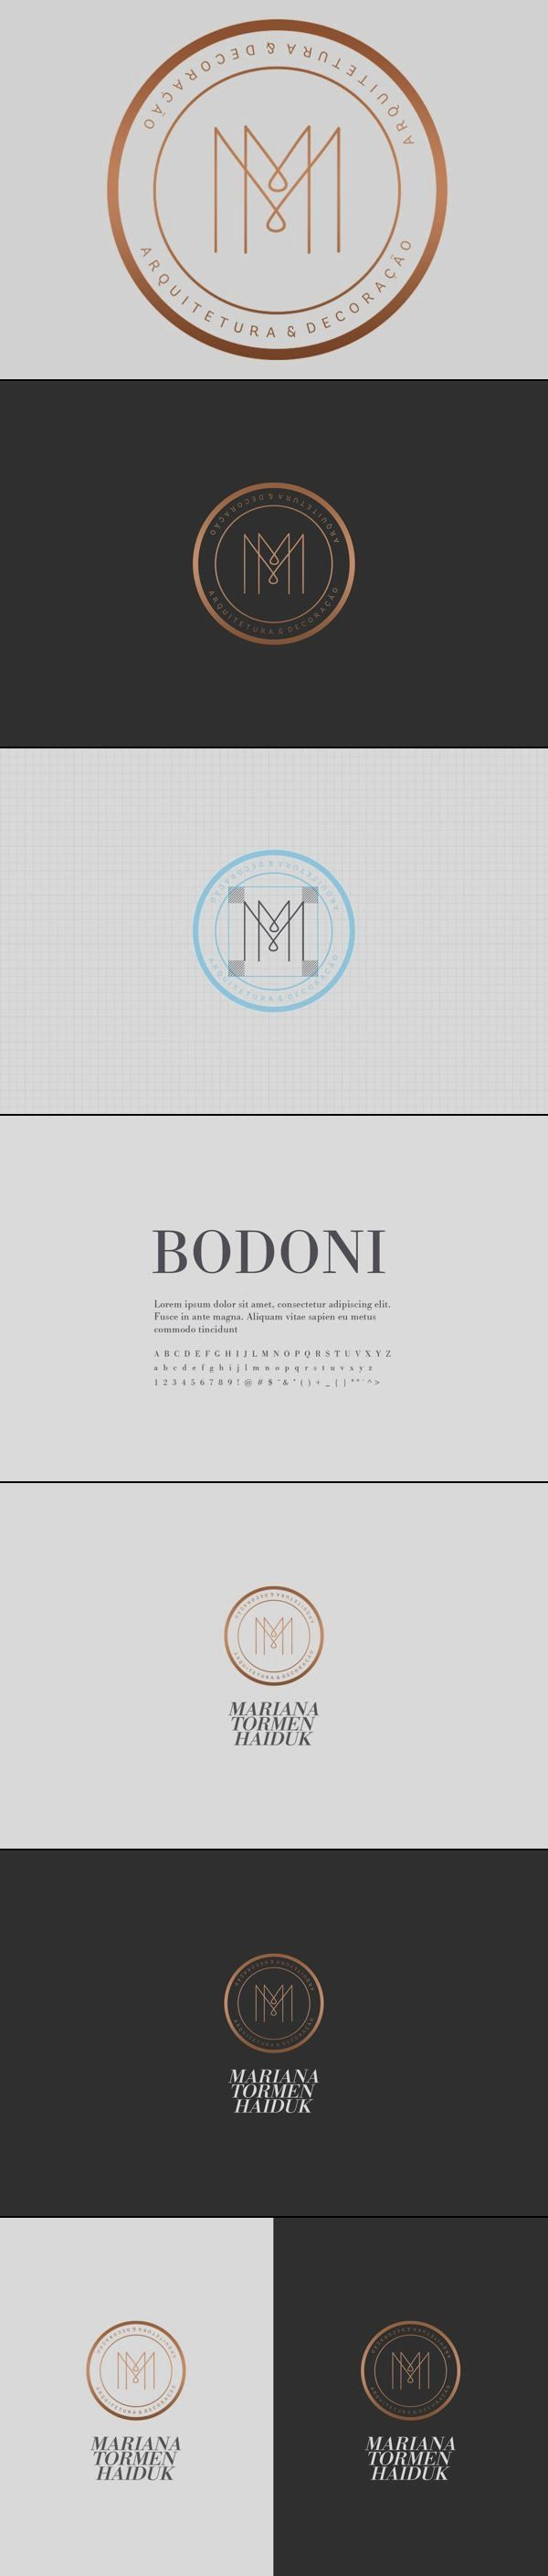 note: Mariana Tormen Haiduk Architecture Logo Design & Brand Identity by Est\u00fadio Alice via Behance.